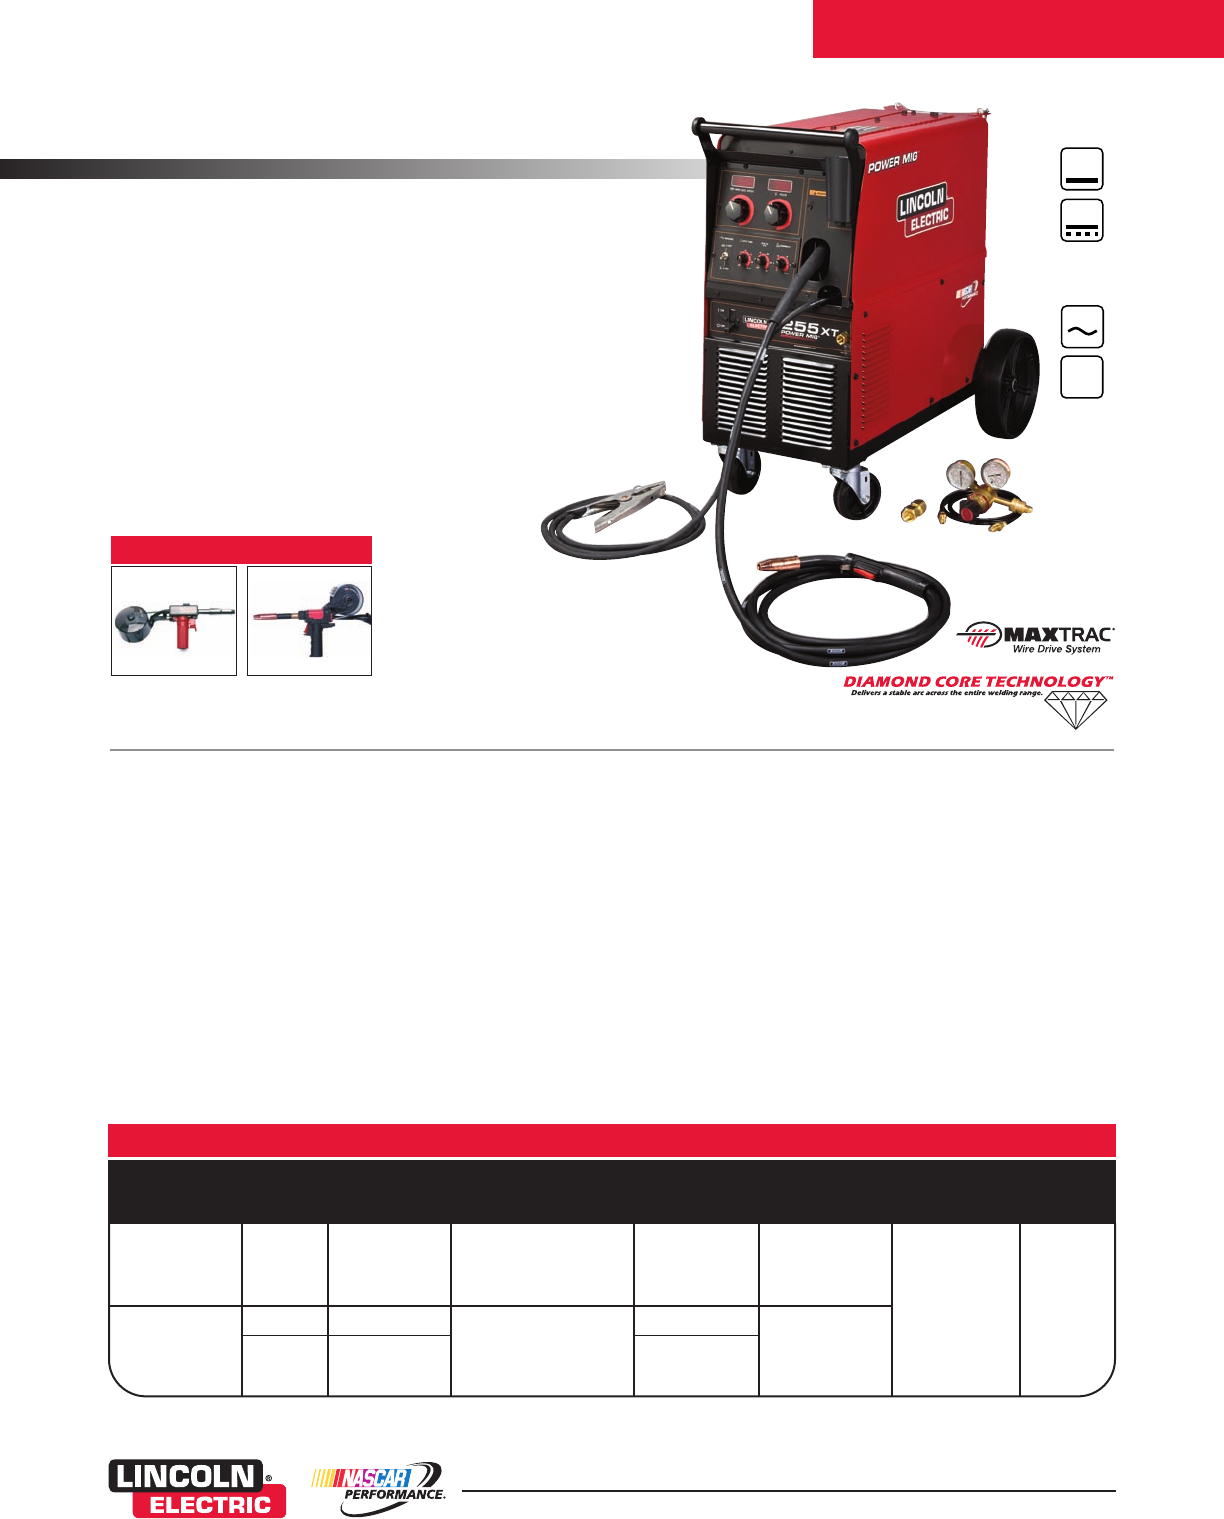 Lincoln Electric Power Mig 255Xt Users Manual Wire Feeder/Welders